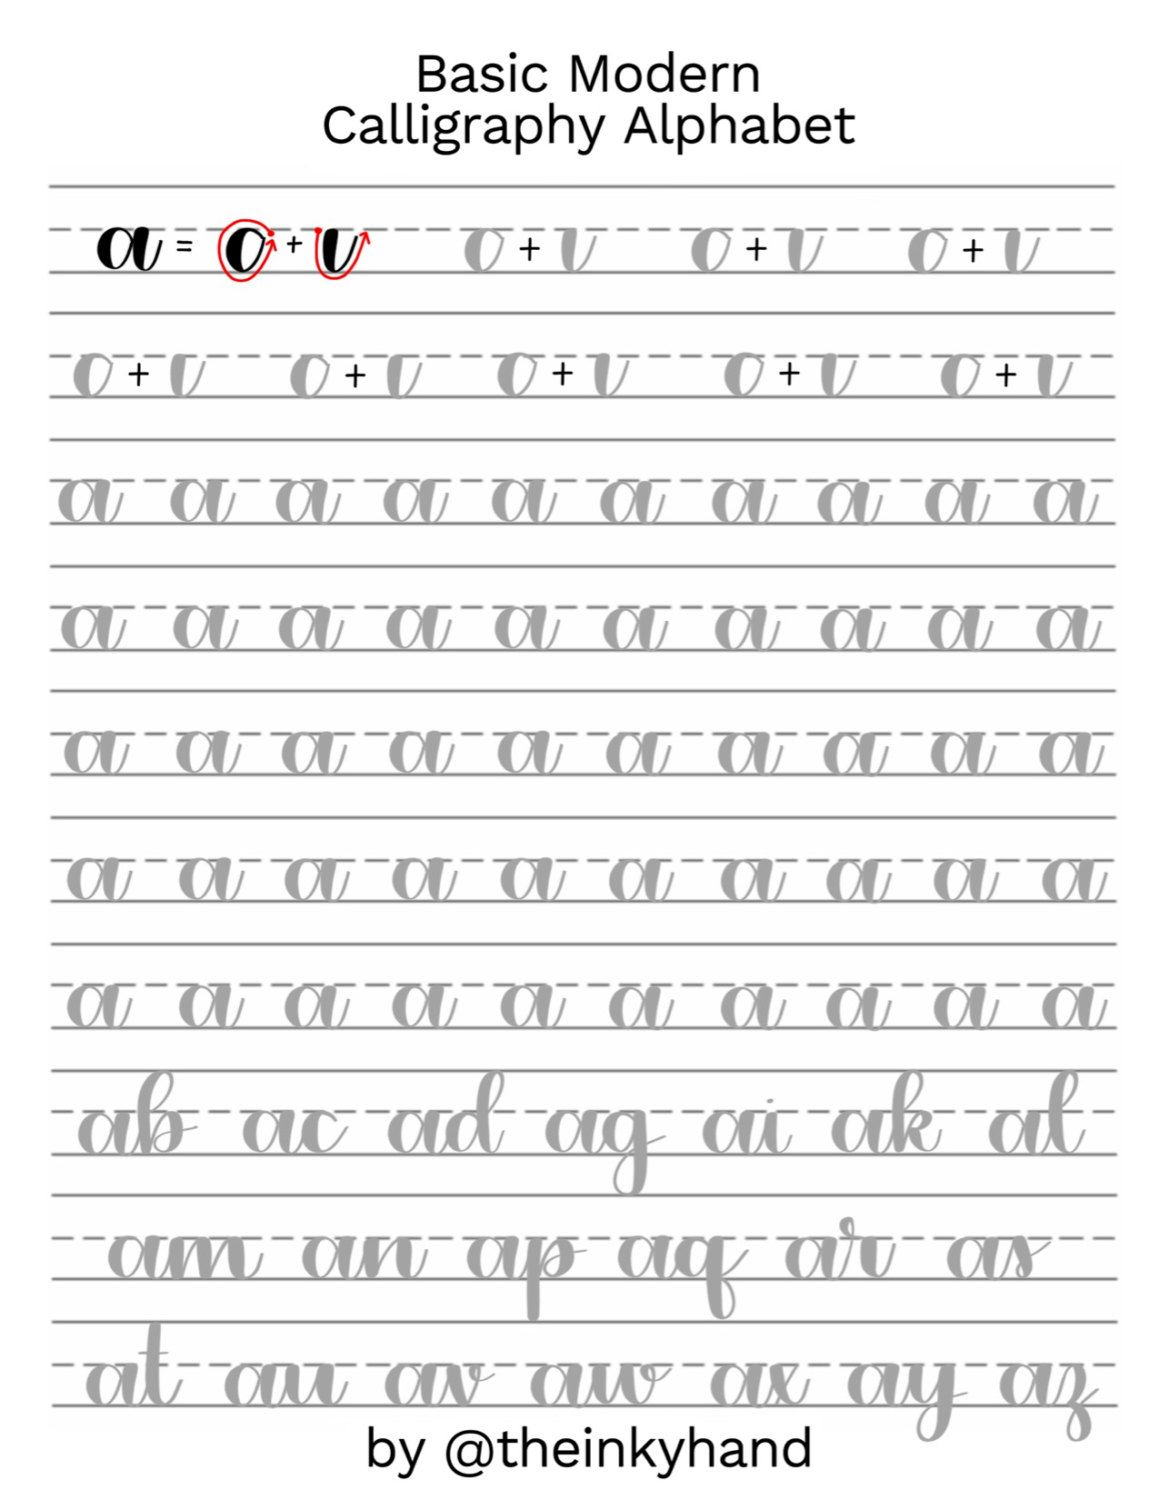 Basic Modern Calligraphy Practice Sheets@theinkyhand in Alphabet Practice Worksheets Pdf